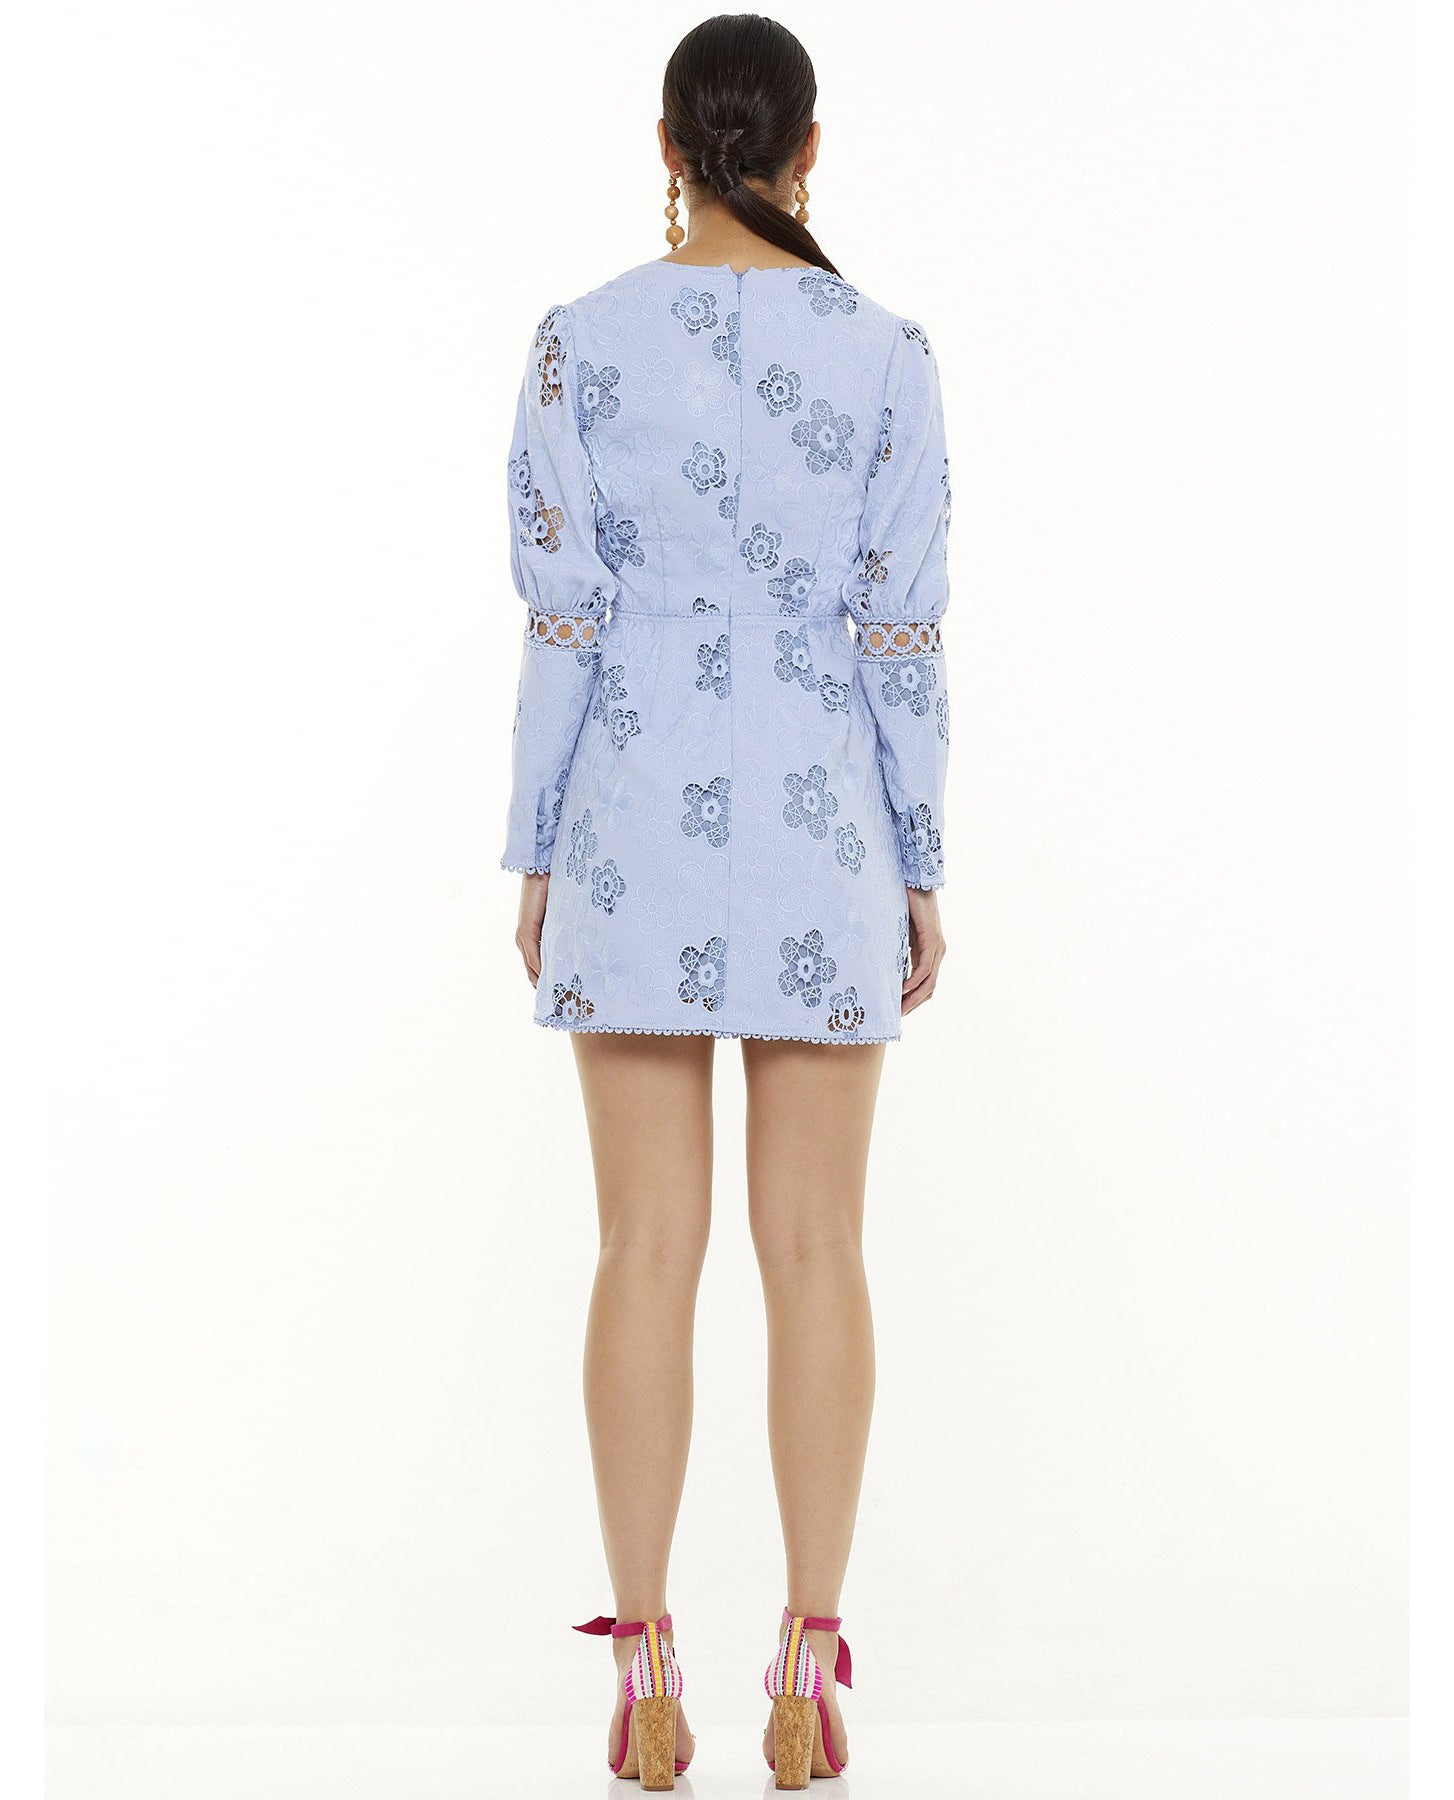 TALULAH BLUE HUE LS MINI DRESS